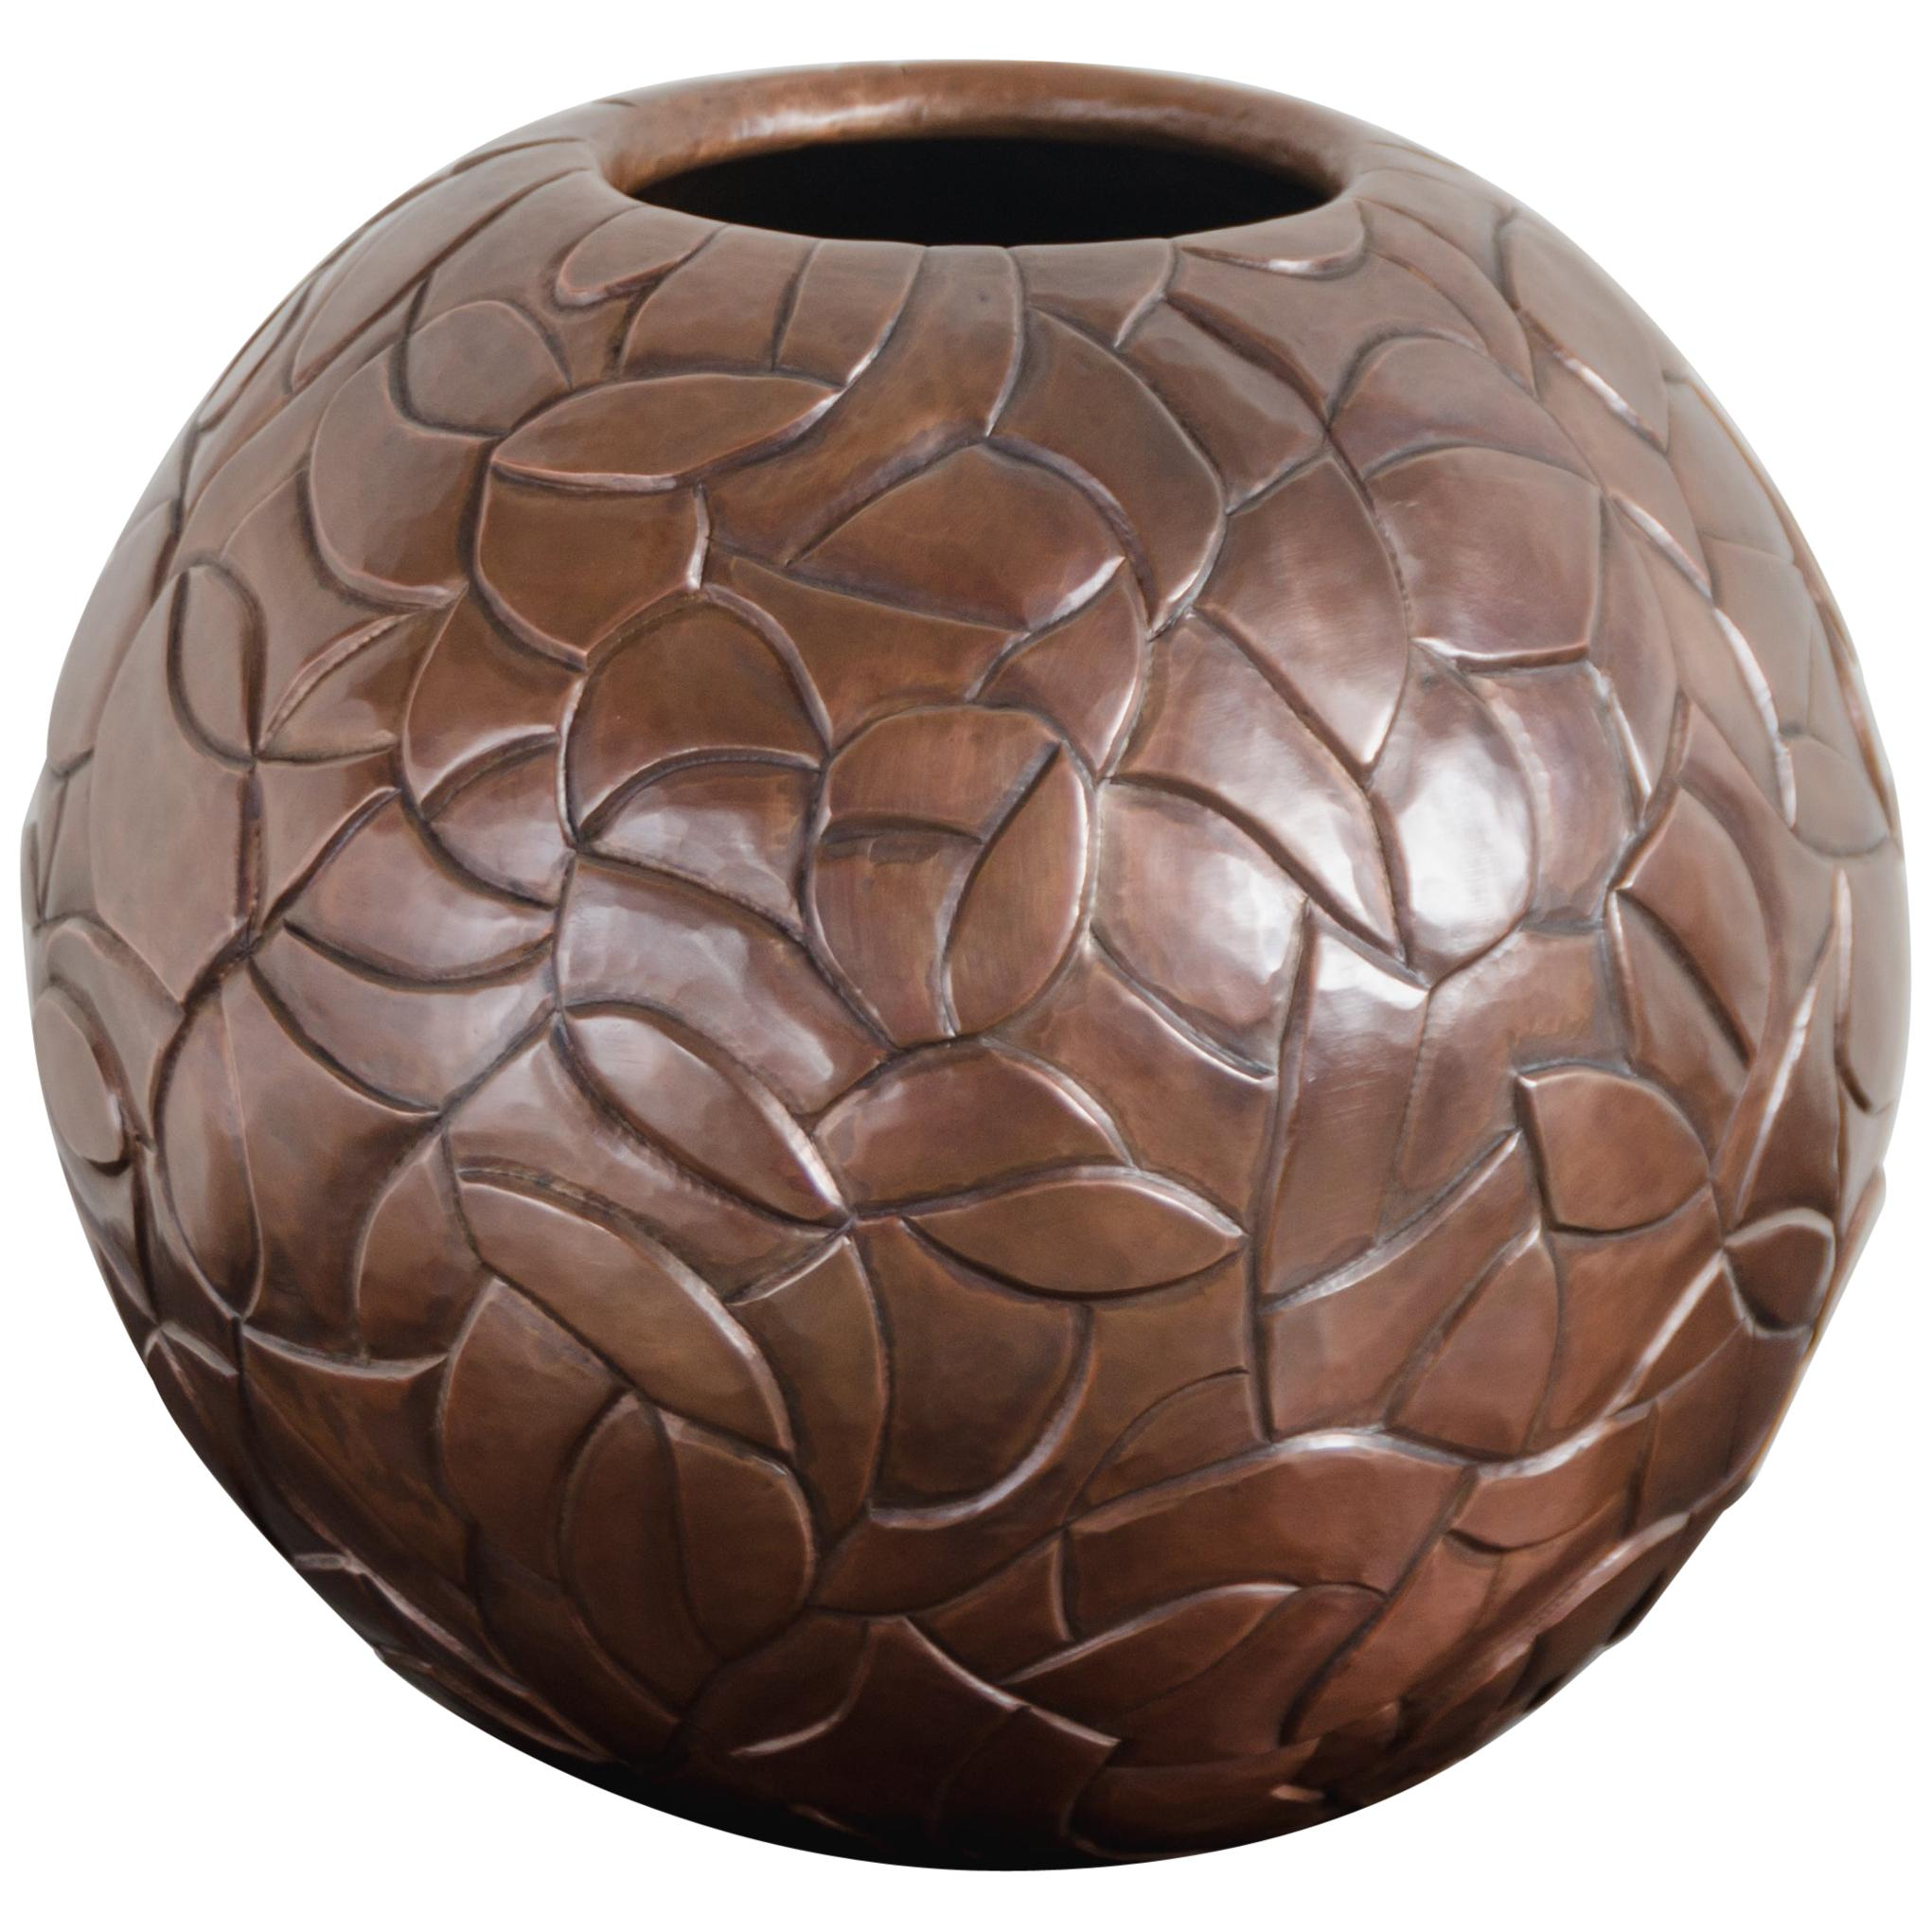 Moon Jar w/ Chuan Design - Antique Copper by Robert Kuo, Limited Edition